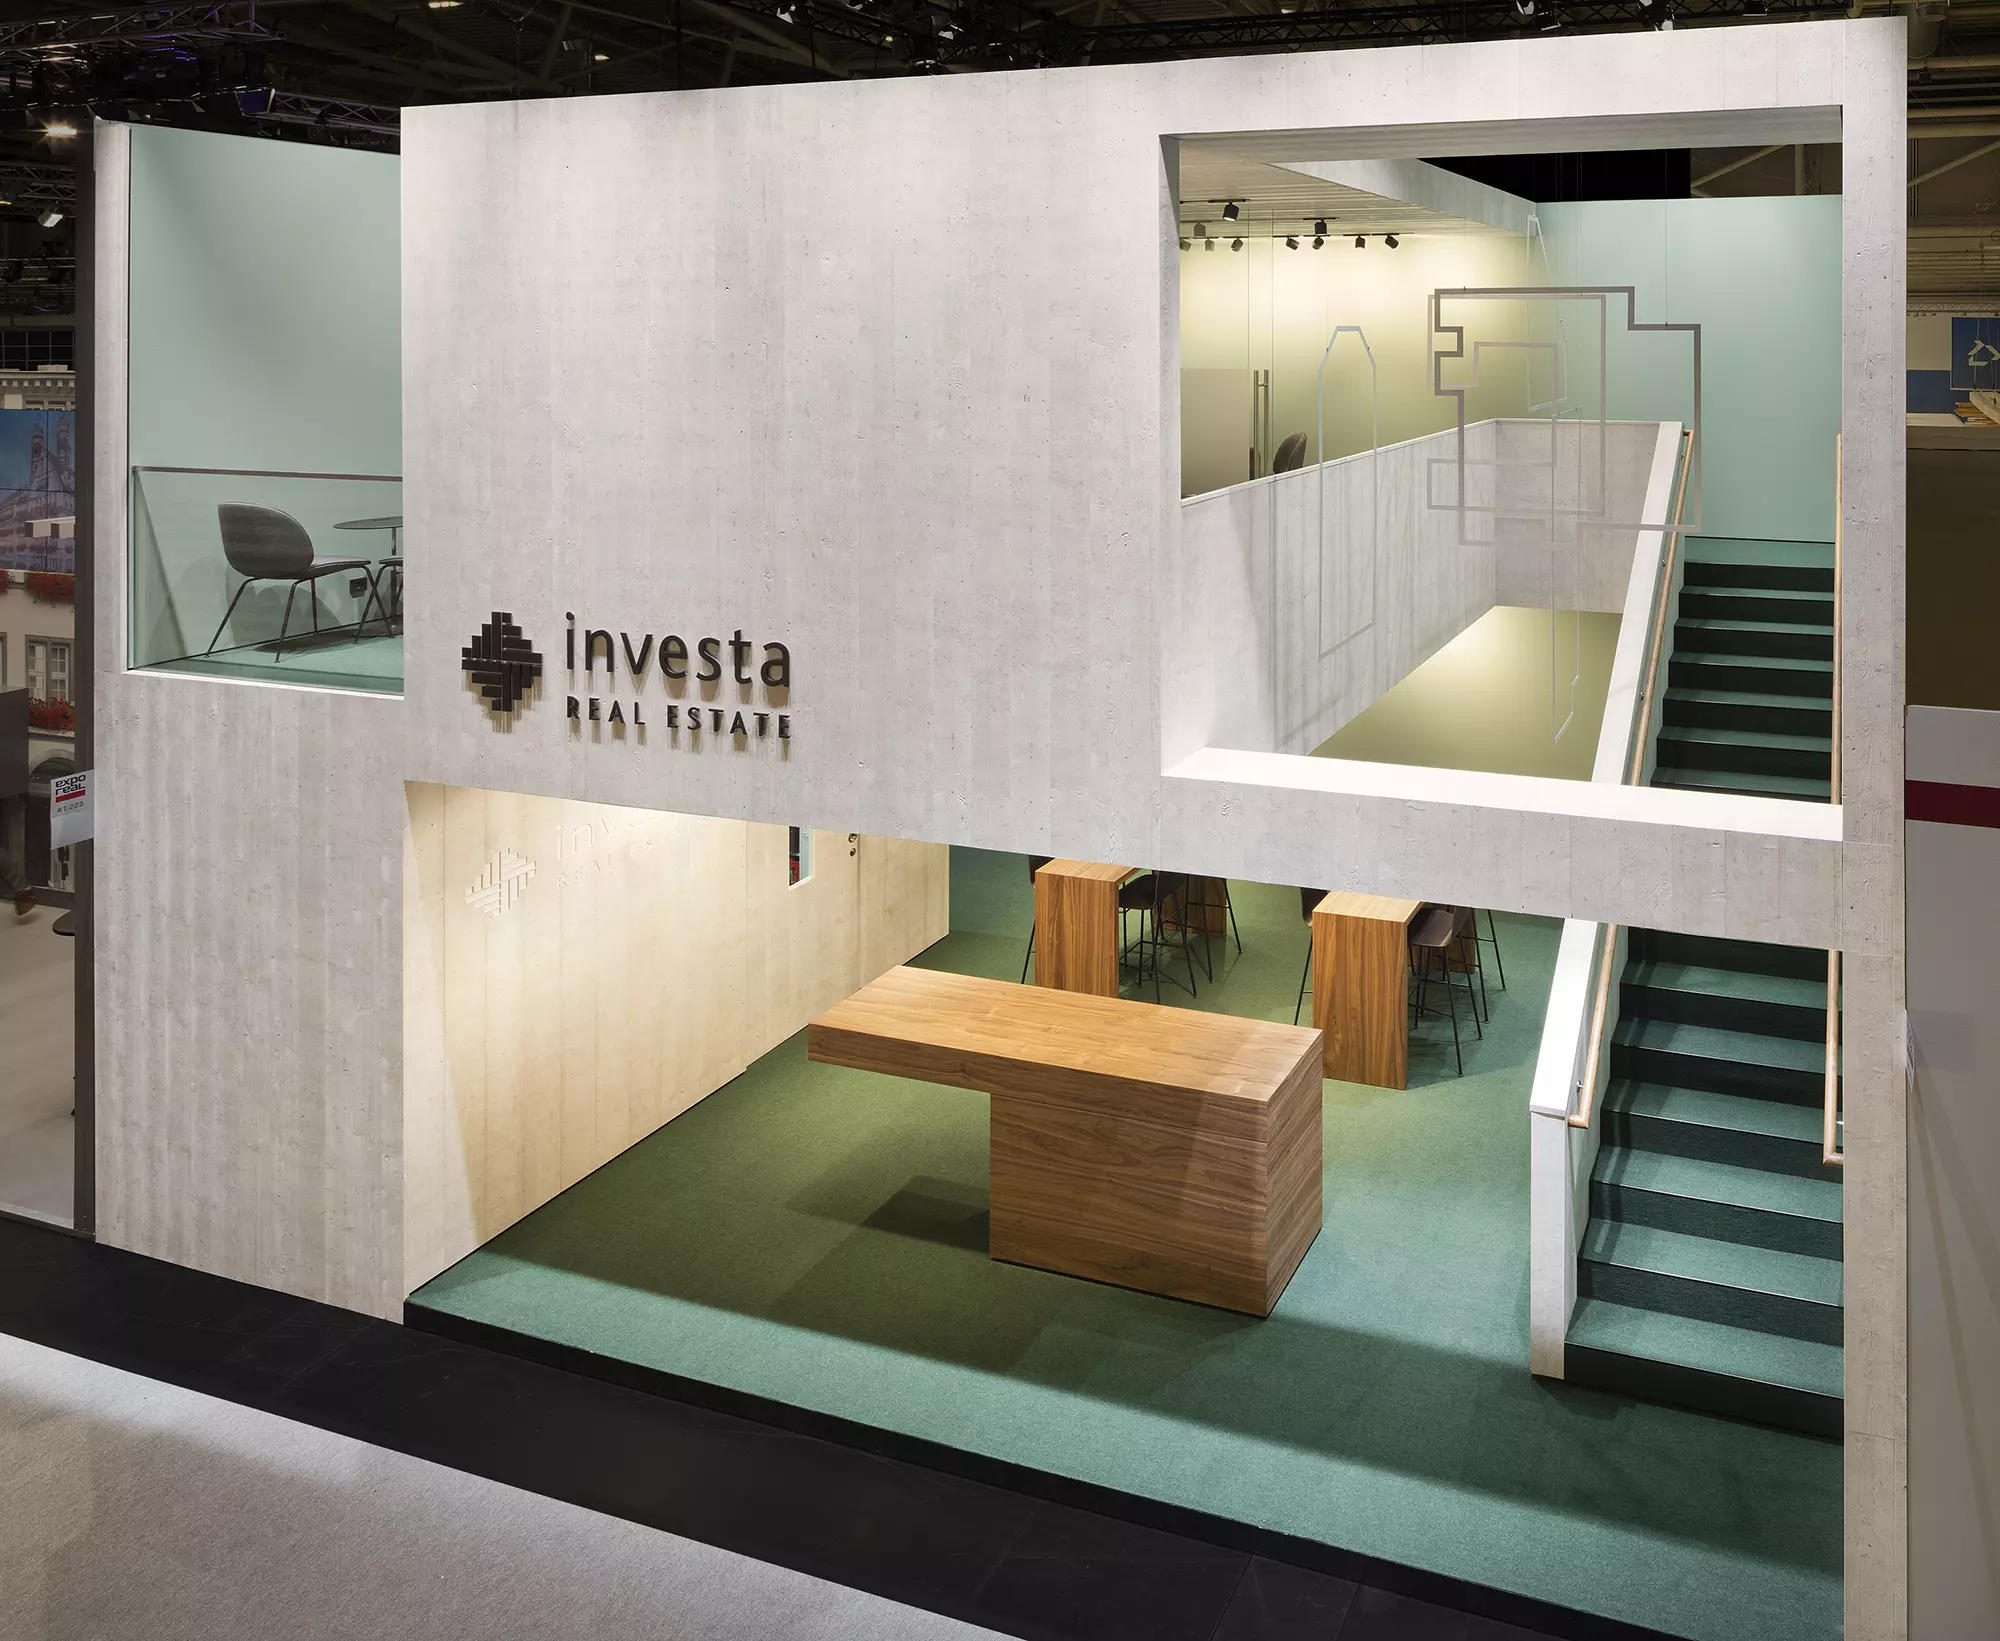 Built excellence as a corporate architecture statement for Investa at Expo Real 2017